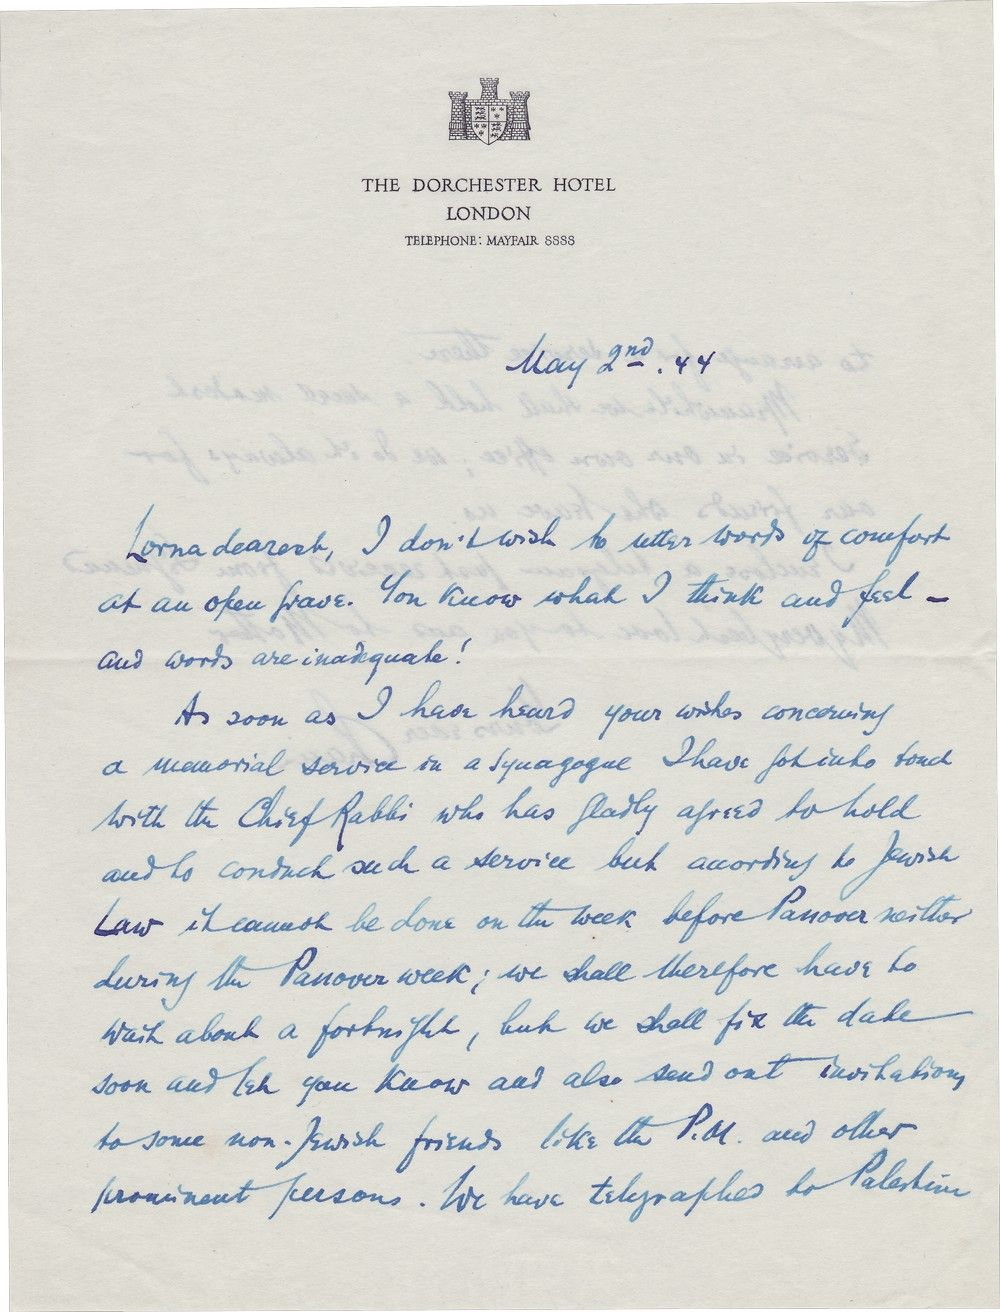 Chaim Weizmann Writes to Orde Wingate's Widow About Wingate's Death and Memorial